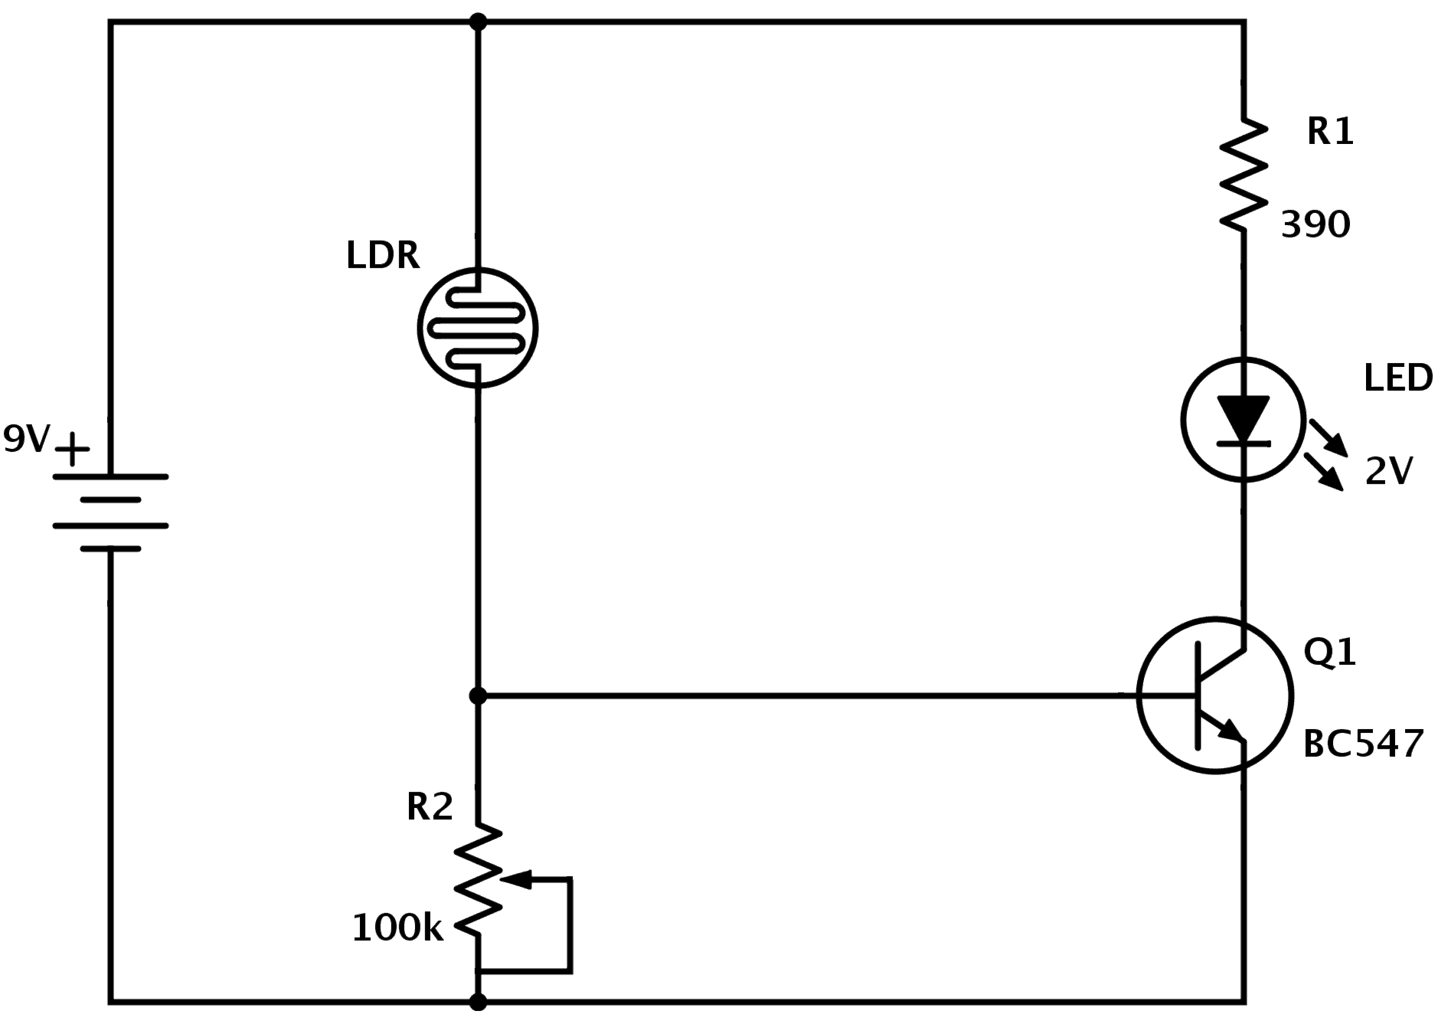 LDR circuit improved circuit diagram how to read and understand any schematic electronic circuit diagrams at bayanpartner.co